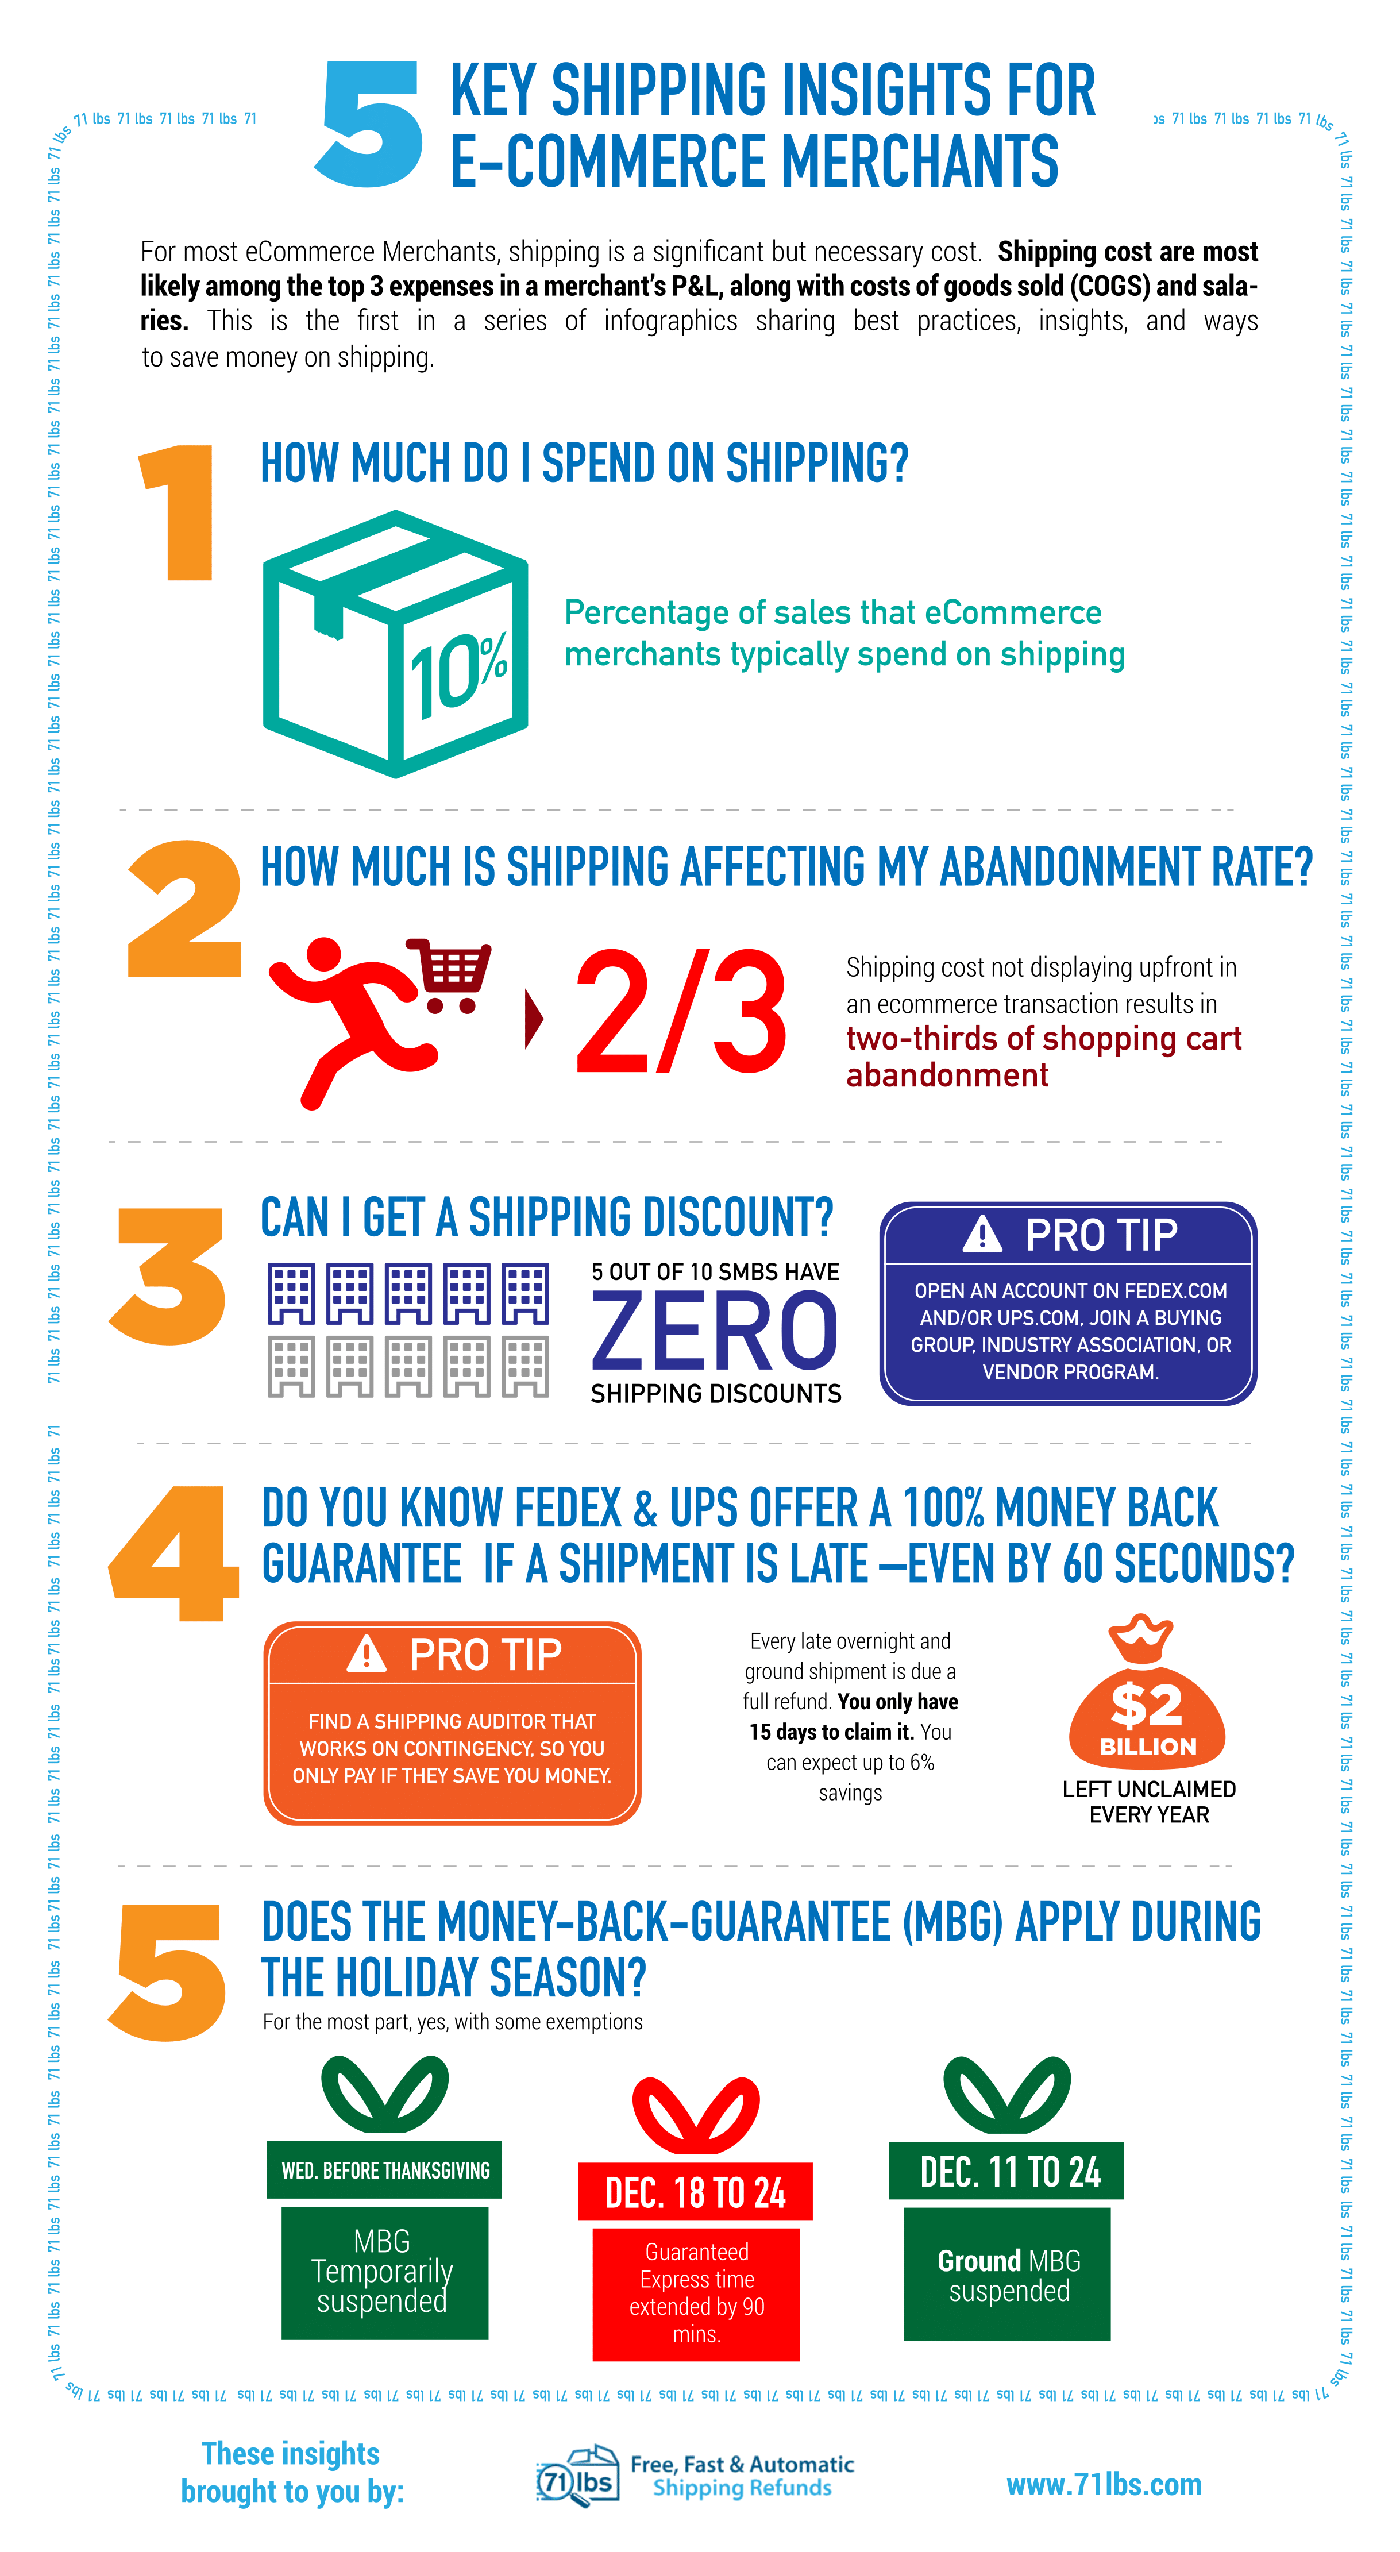 FedEx and UPS users: If your overnight or ground shipment is late, even by 60 seconds, you should get 100% of your money back